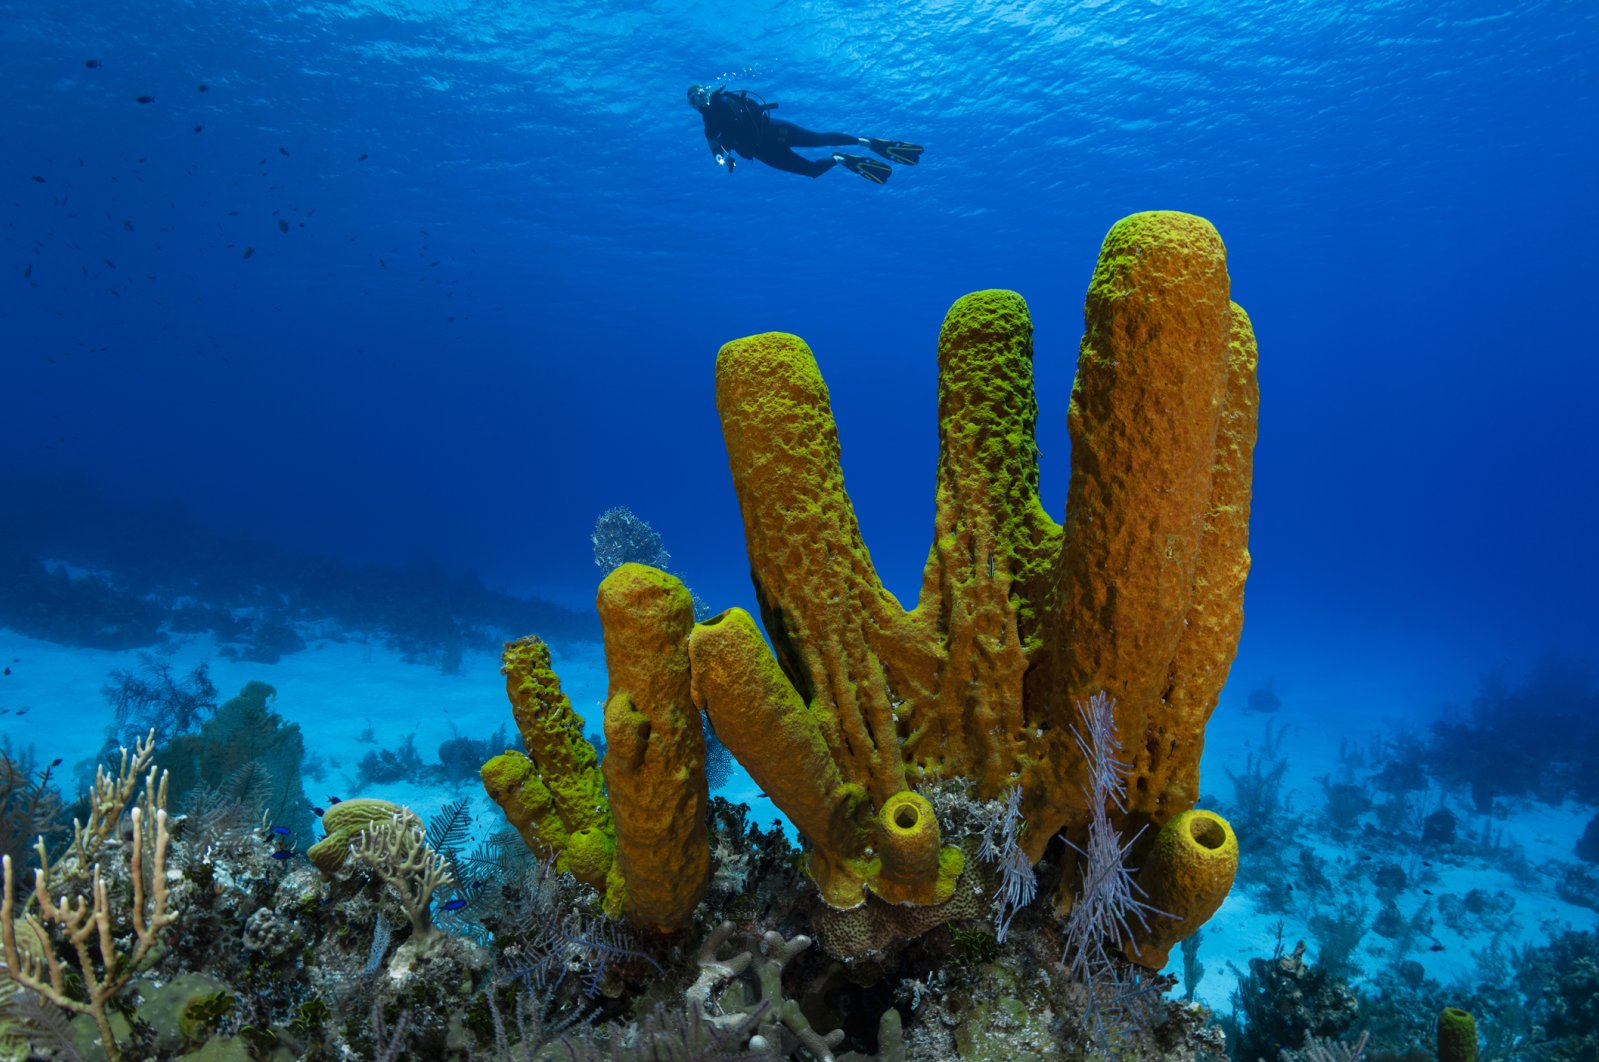 Yellow tube sponges (pictured) are filter feeders, which means that they eat plankton and bacteria and are not carnivores. (iStock Photo)